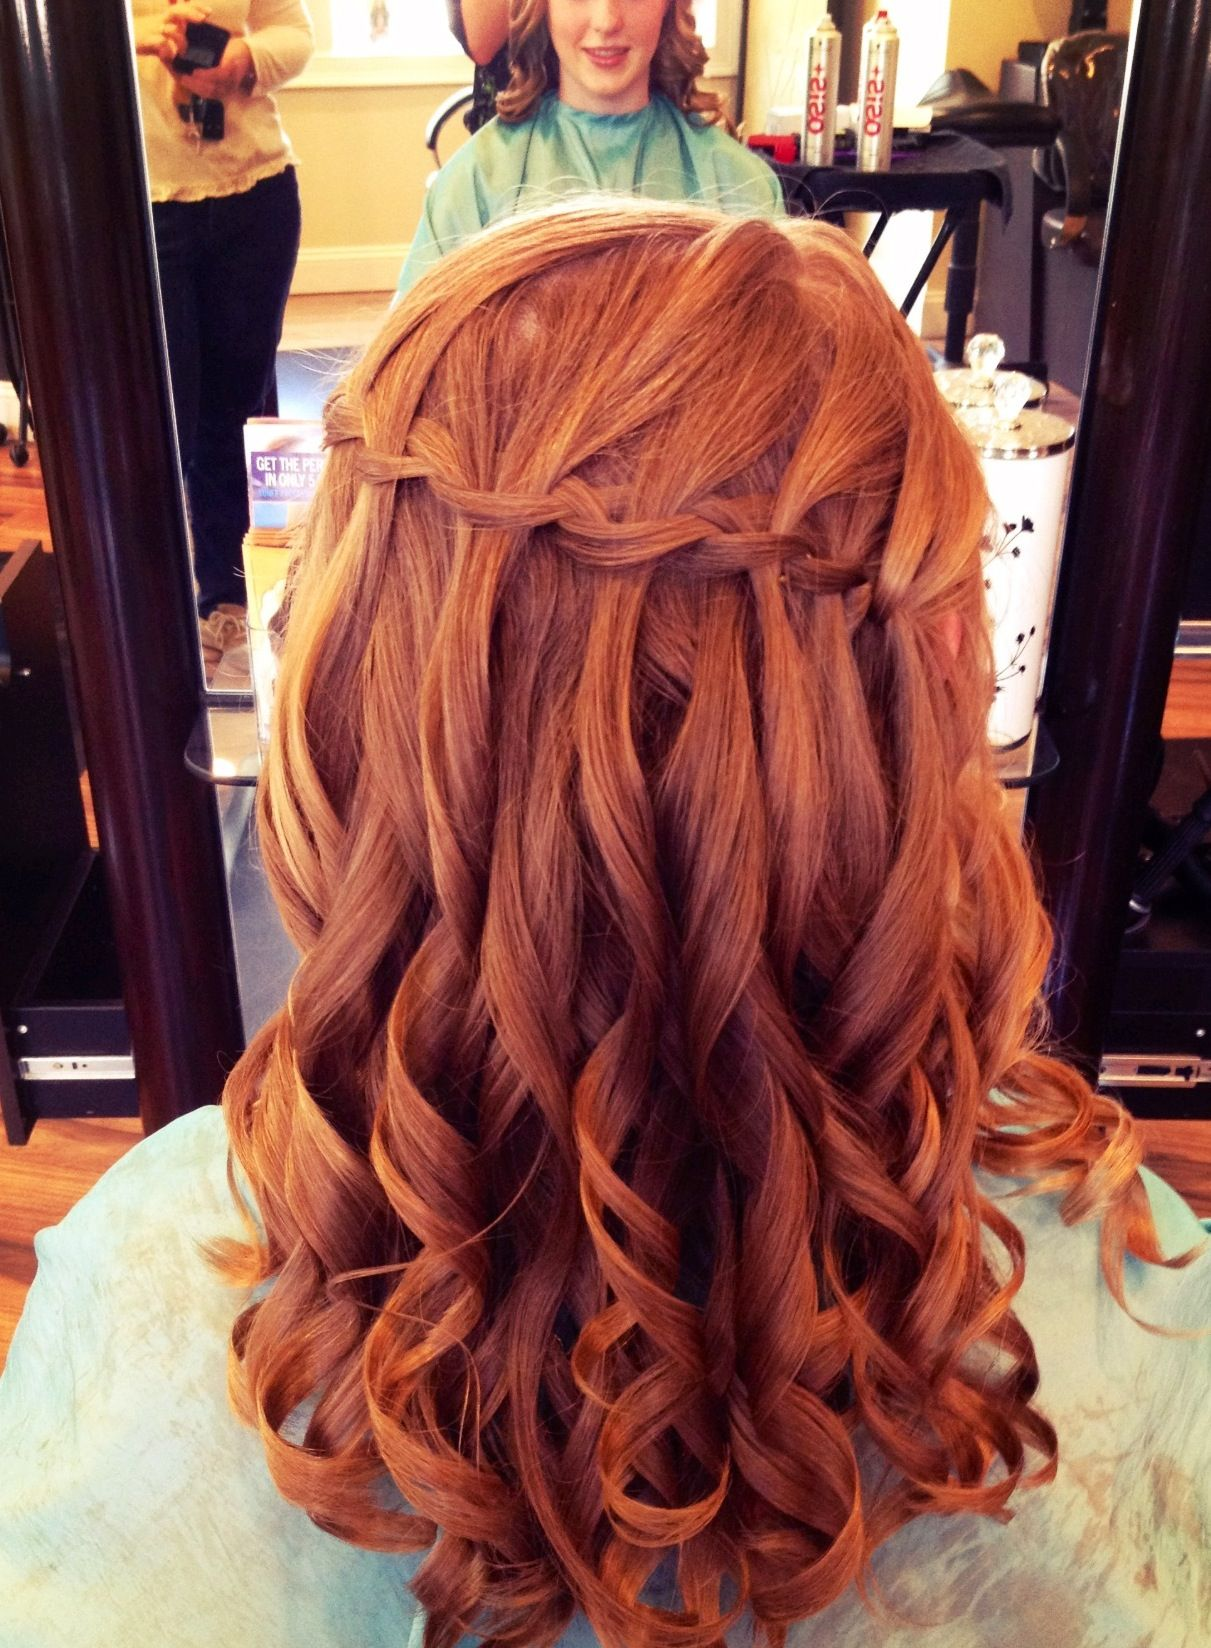 Waterfall braid with curls prom updo hair dous i want pinterest